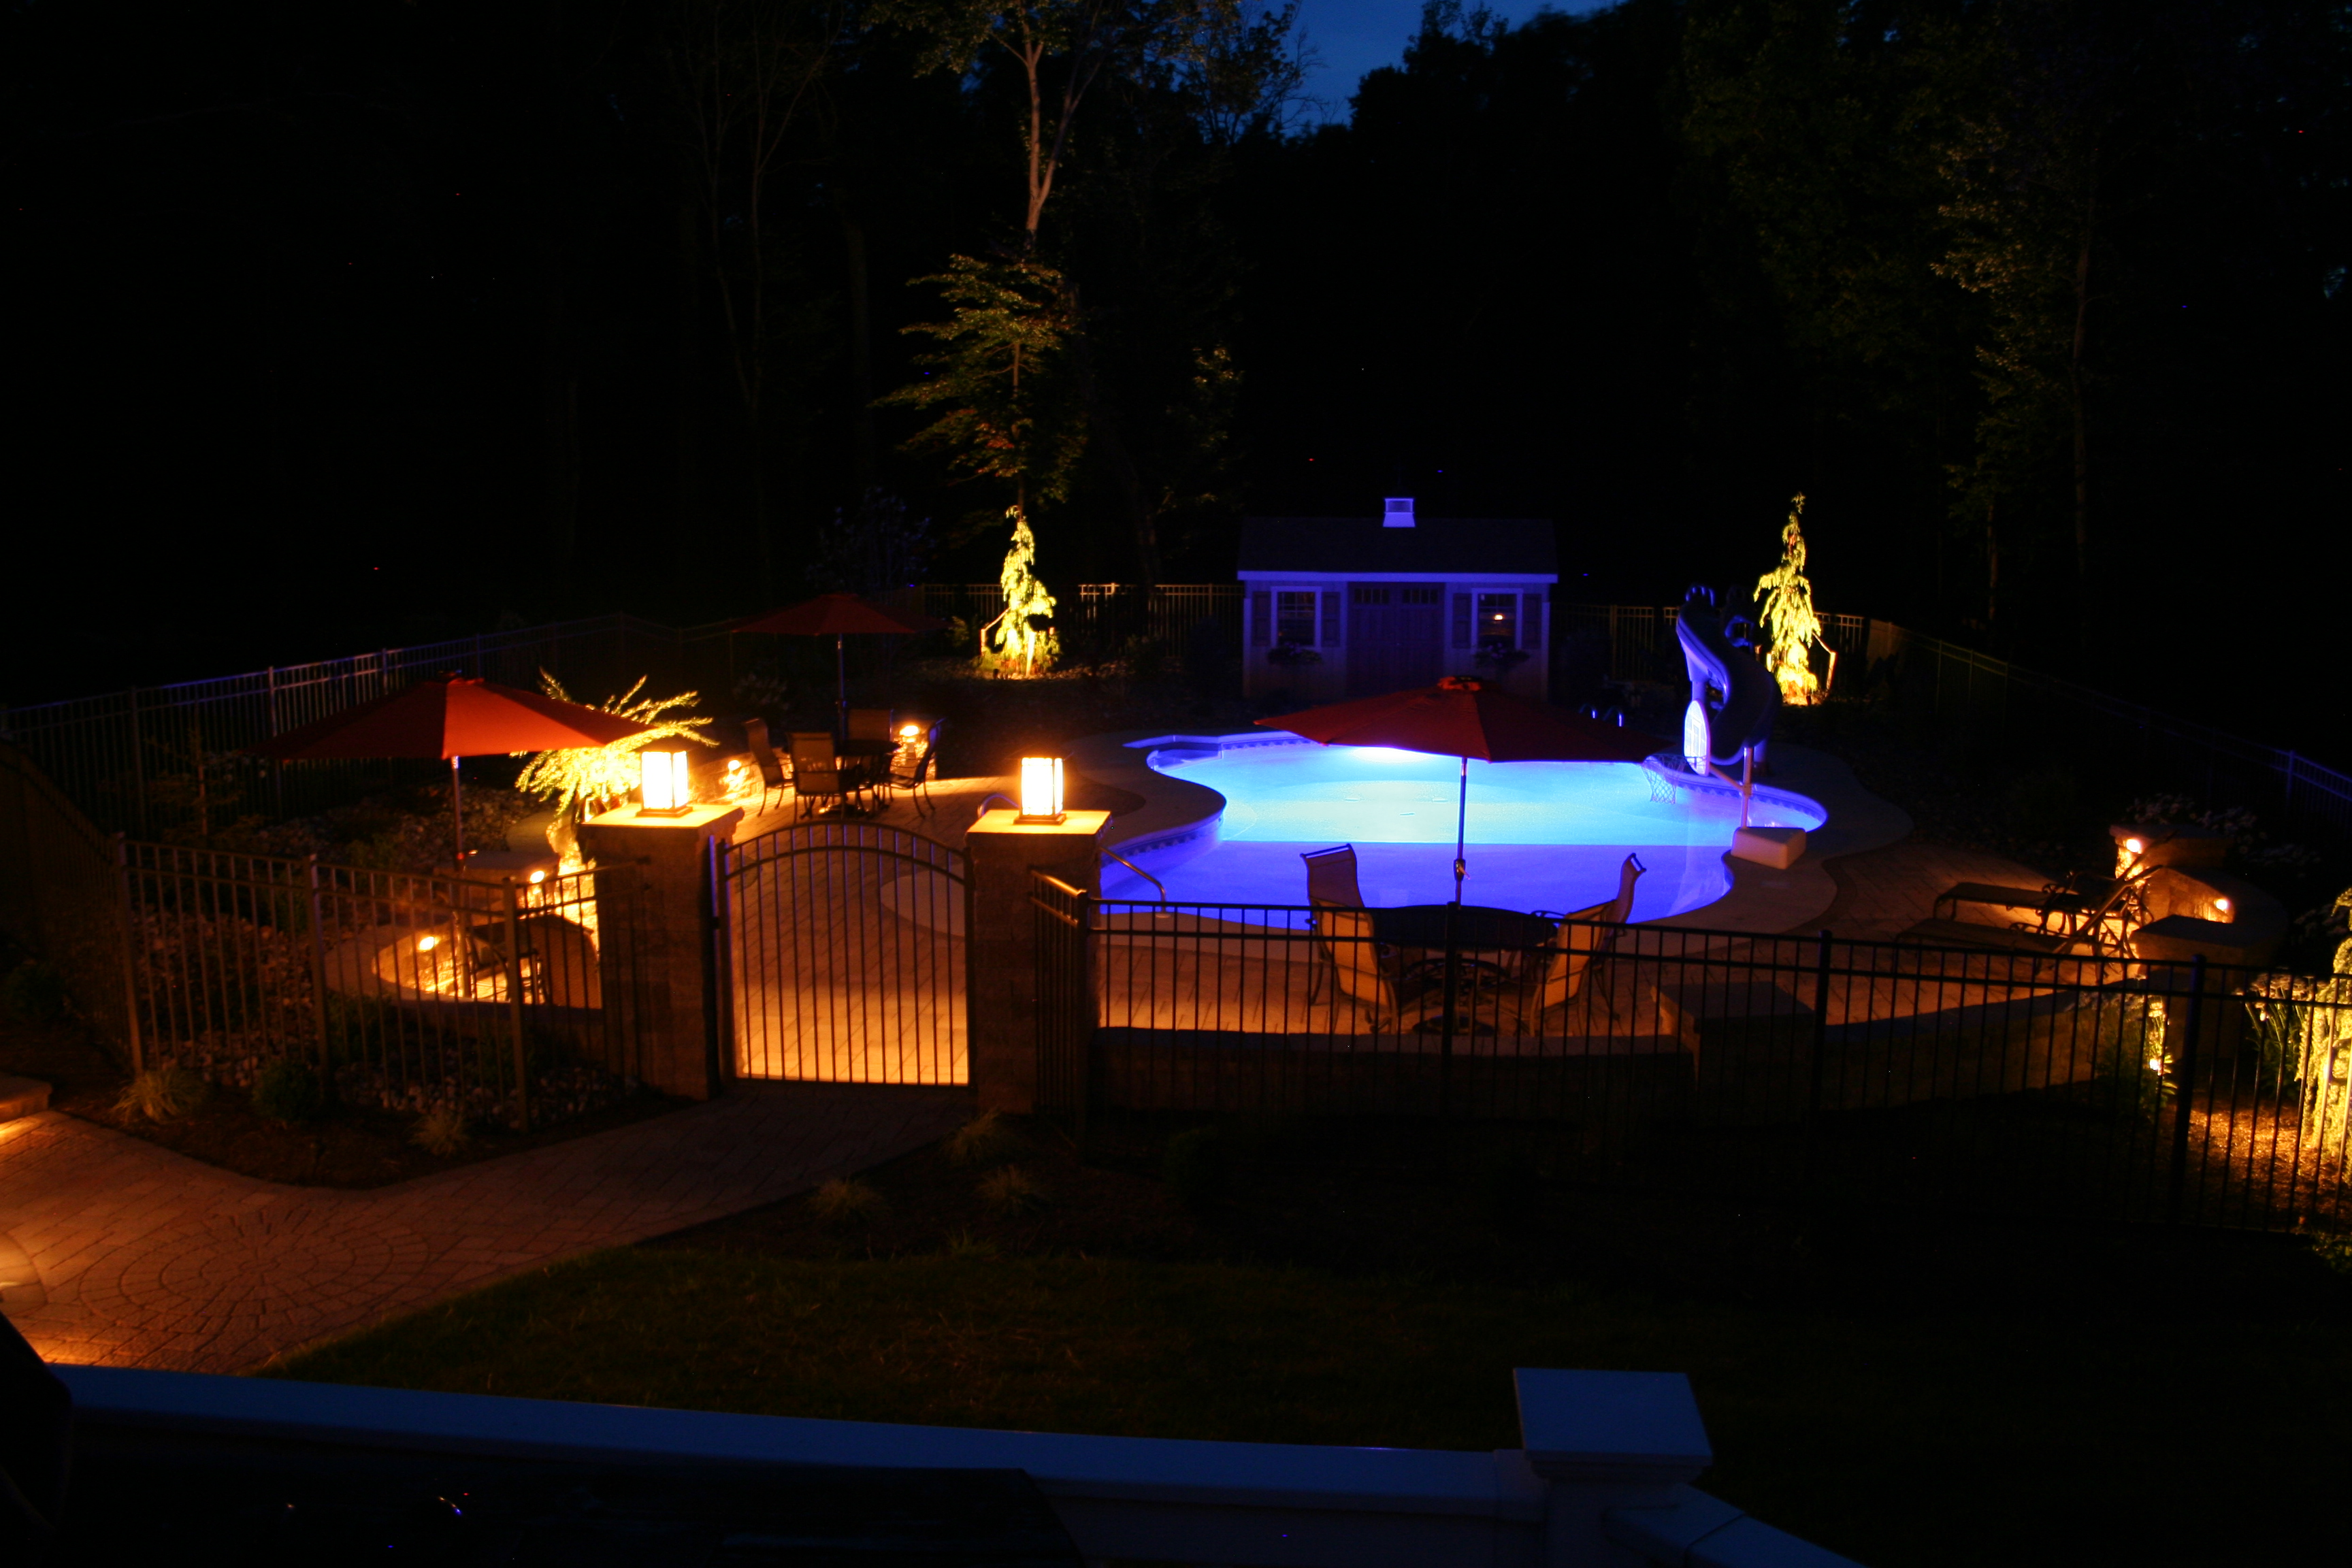 See this Amazing Hardscape Poolside Patio with Landscaping Pool Side Lighting Ideas on wall lighting ideas, sauna lighting ideas, beach lighting ideas, cottage lighting ideas, ballroom lighting ideas, lawn lighting ideas, bar lighting ideas, pool room lighting, gym lighting ideas, romantic lighting ideas, spa lighting ideas, terrace lighting ideas, swimming pool decorating ideas, studio lighting ideas, outdoor pool decorating ideas, blue lighting ideas, restaurant lighting ideas, bbq lighting ideas, pool side outdoor lighting, yard lighting ideas,